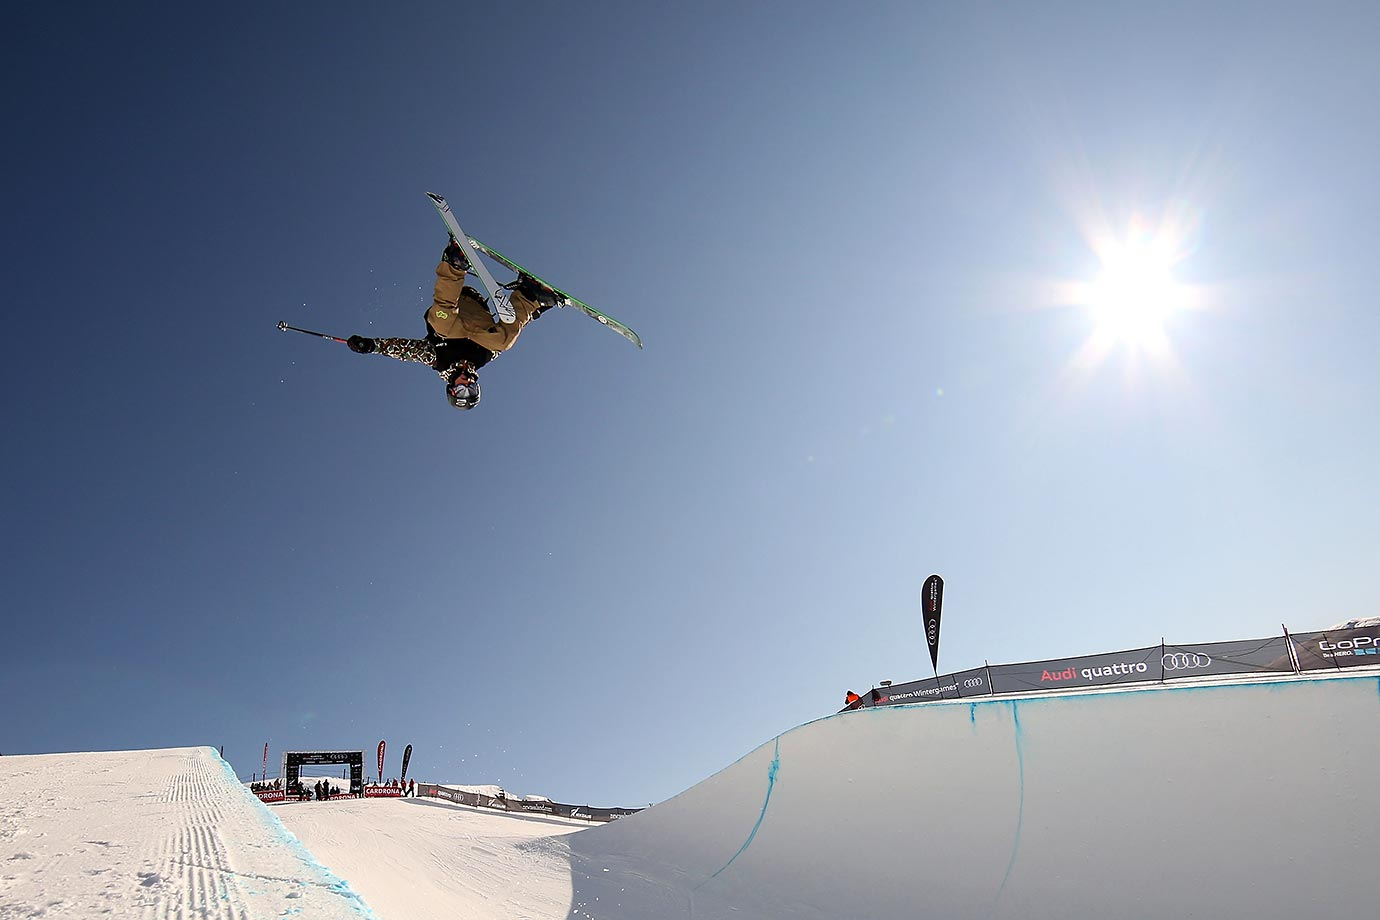 Kwang-jin Kim during the FIS Freestyle Ski World Cup Halfpipe qualifying during the Winter Games NZ at Cardrona Alpine Resort in Wanaka, New Zealand.